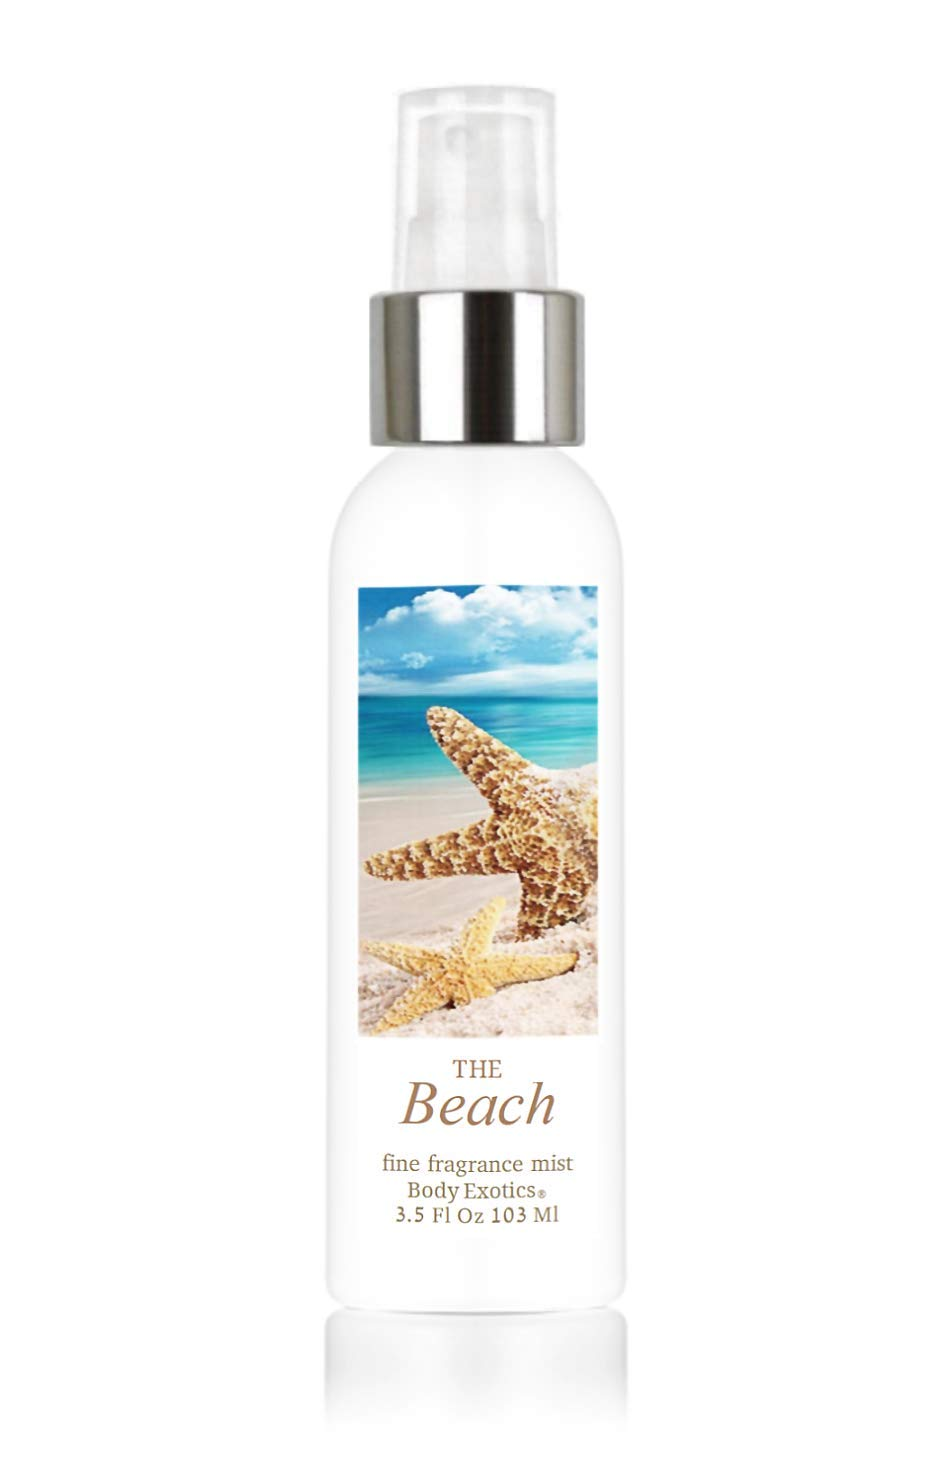 Beach Perfume Fine Fragrance Cologne Mist by Body Exotics 3.5 Fl Oz 103 Ml ~ a Fresh Blend of Warm Sand, Sea Spray, Driftwood, Lavender, Bright Citrus, Sand Jasmine, White Musk, Coconut, and Sea Salt